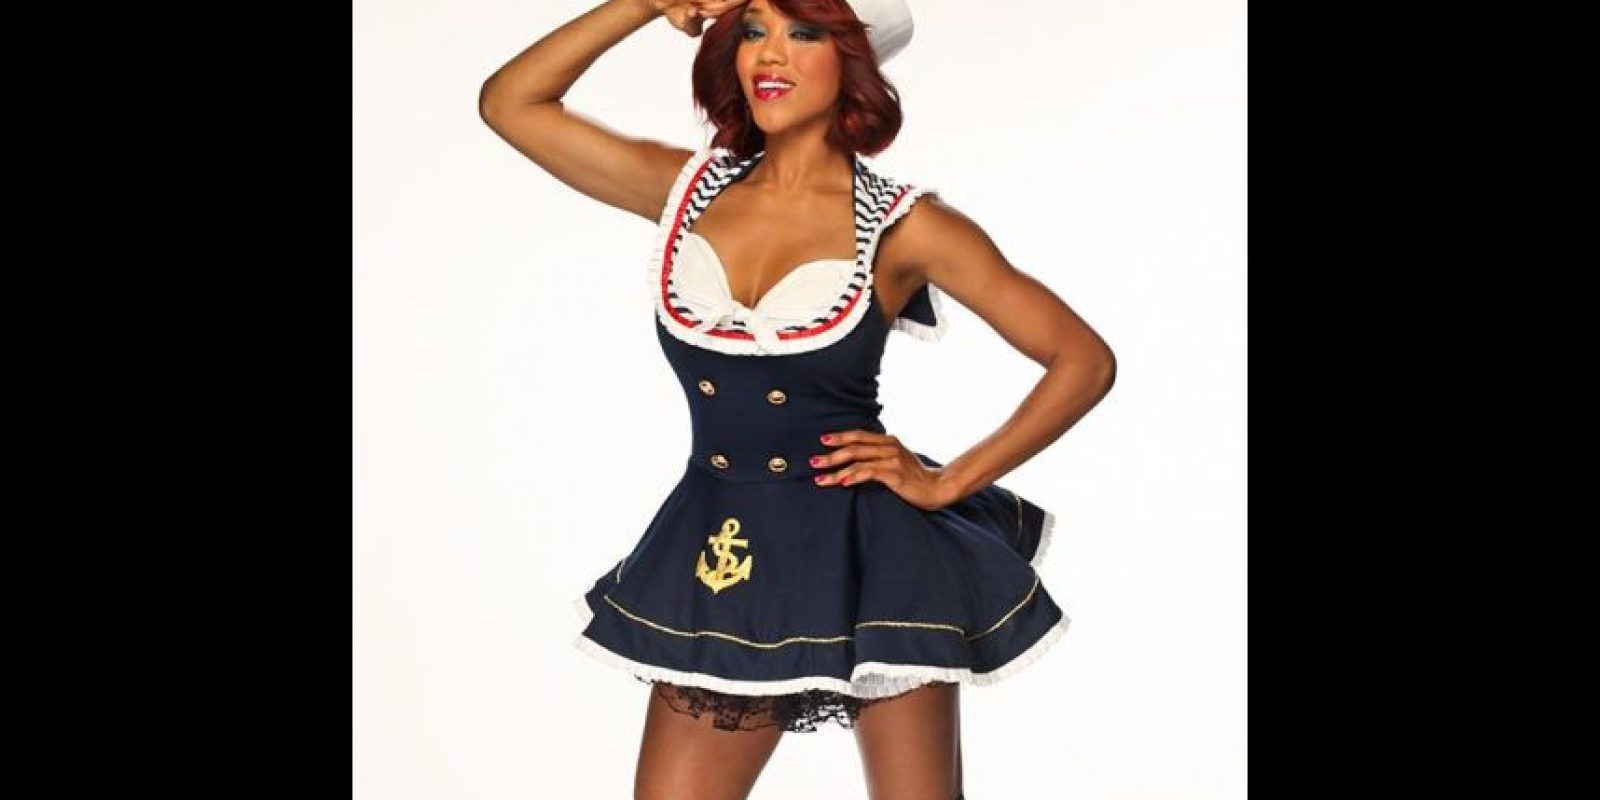 Alicia Fox como marinera. Foto: WWE